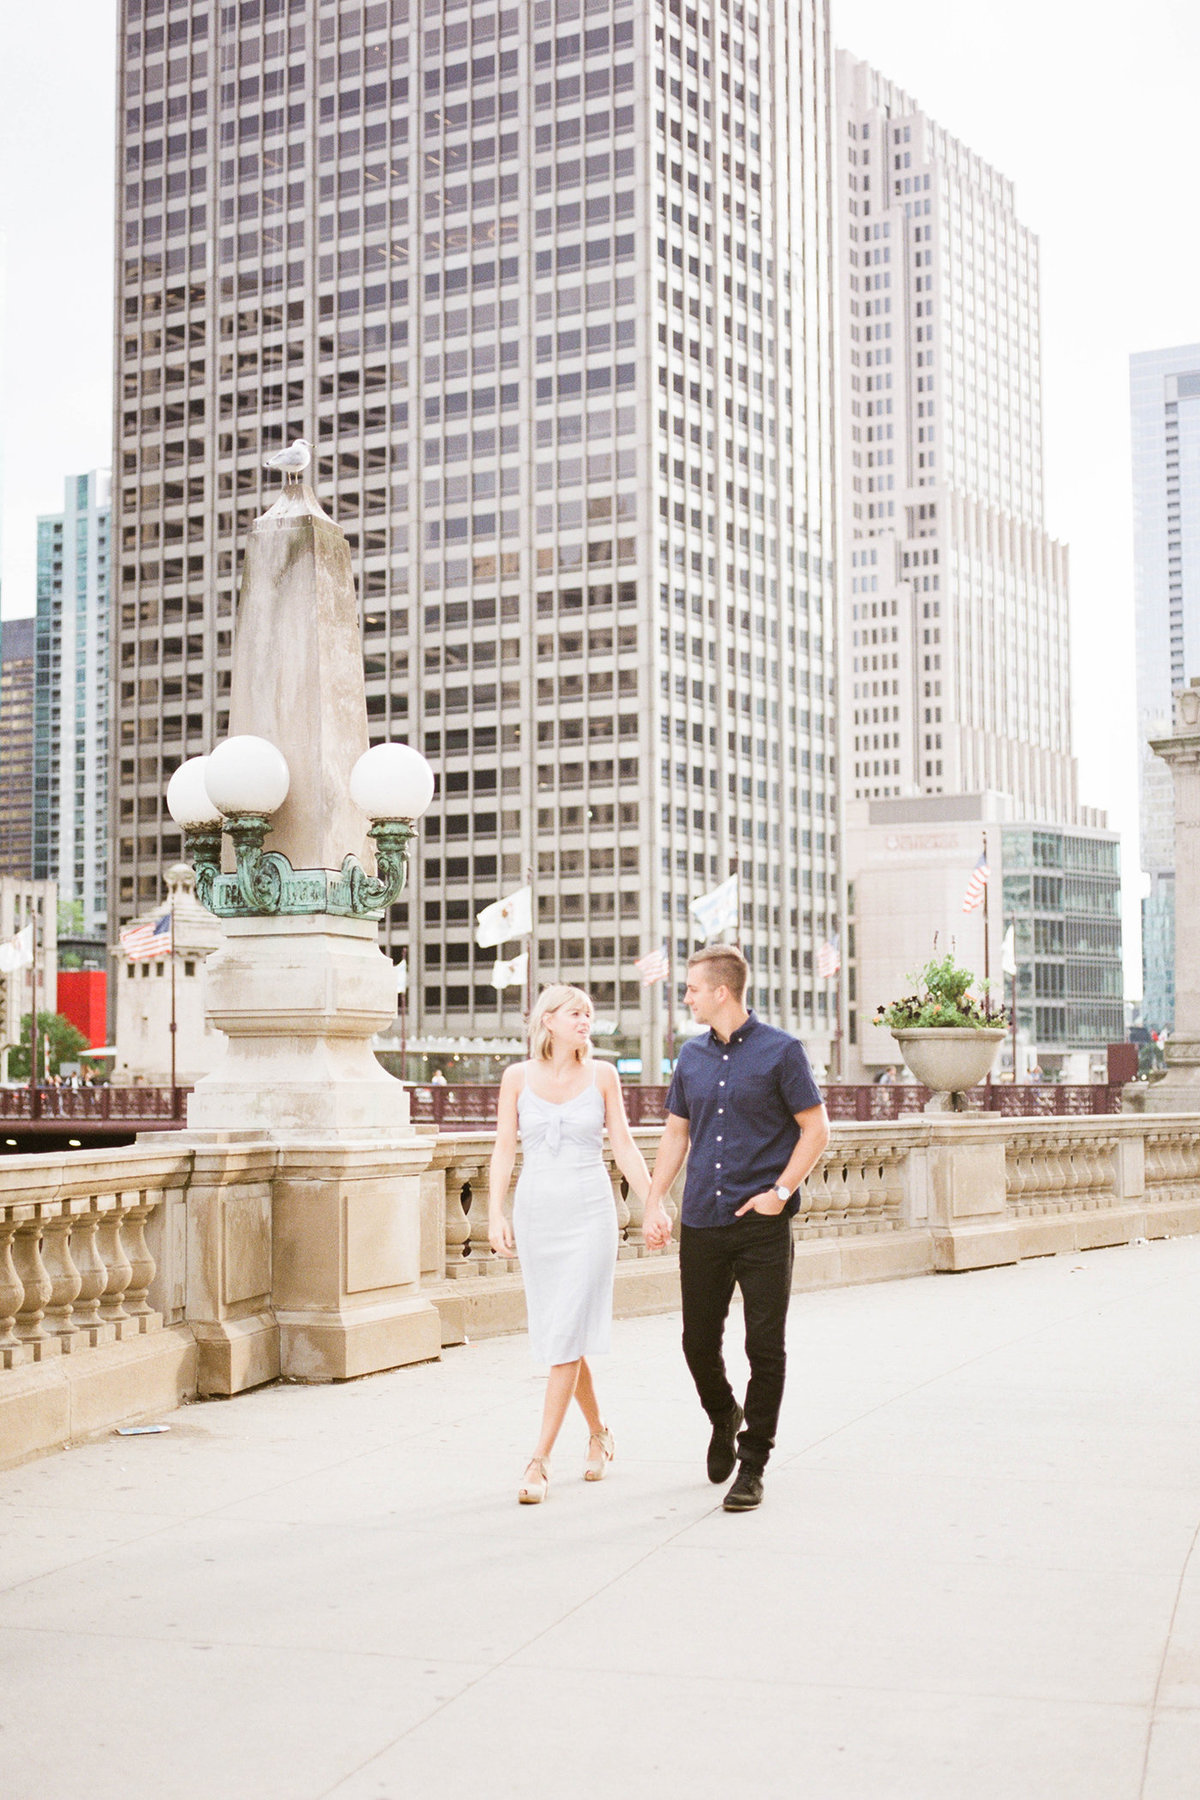 Chicago Wedding Photographer - Fine Art Film Photographer - Sarah Sunstrom - Sam + Morgan - Engagement Session - 12